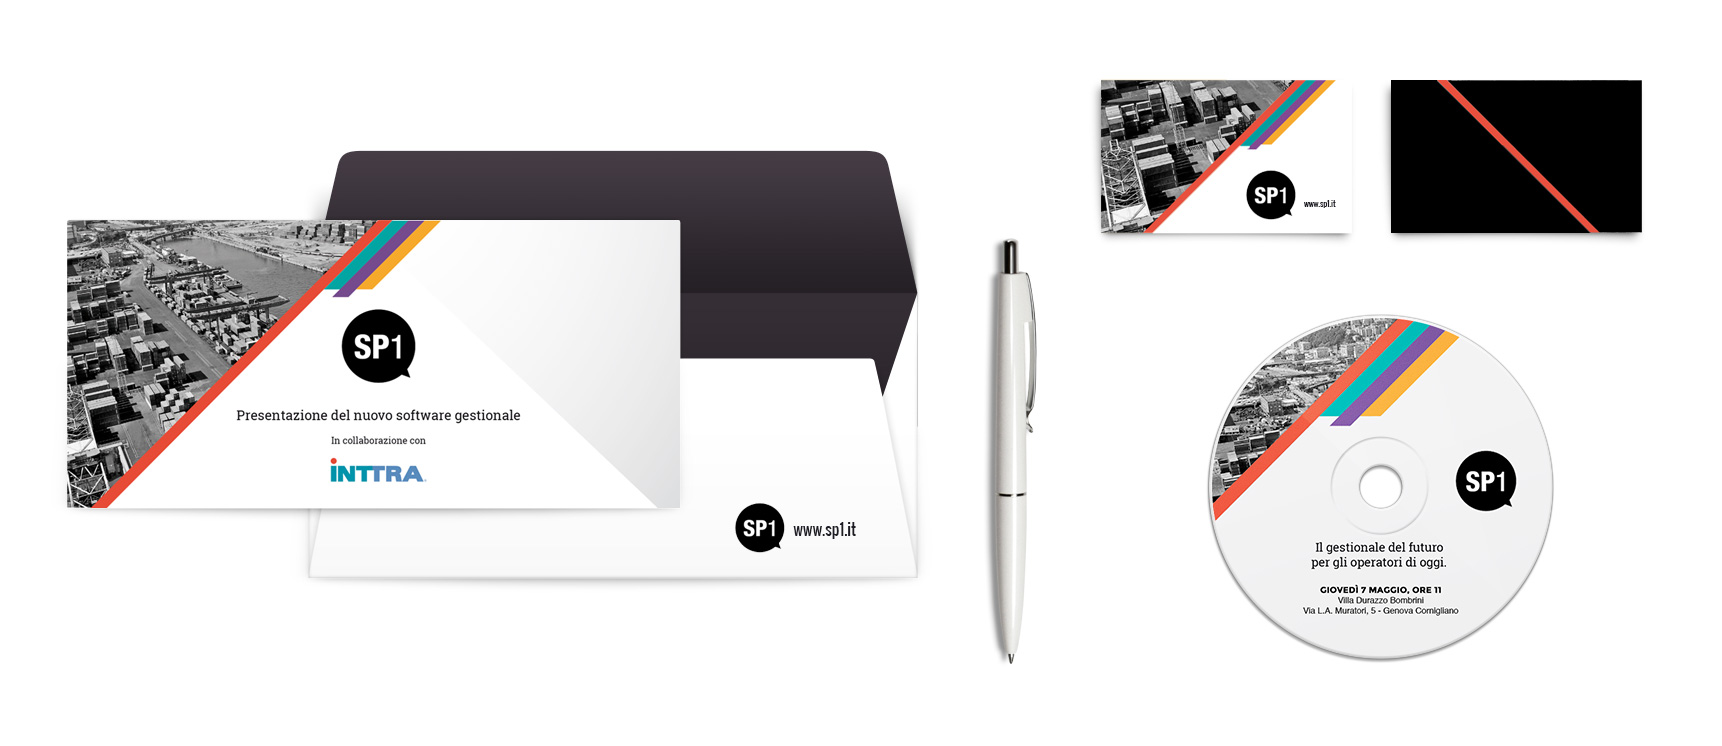 mintlab brand identity SP1 freight shipping icon system